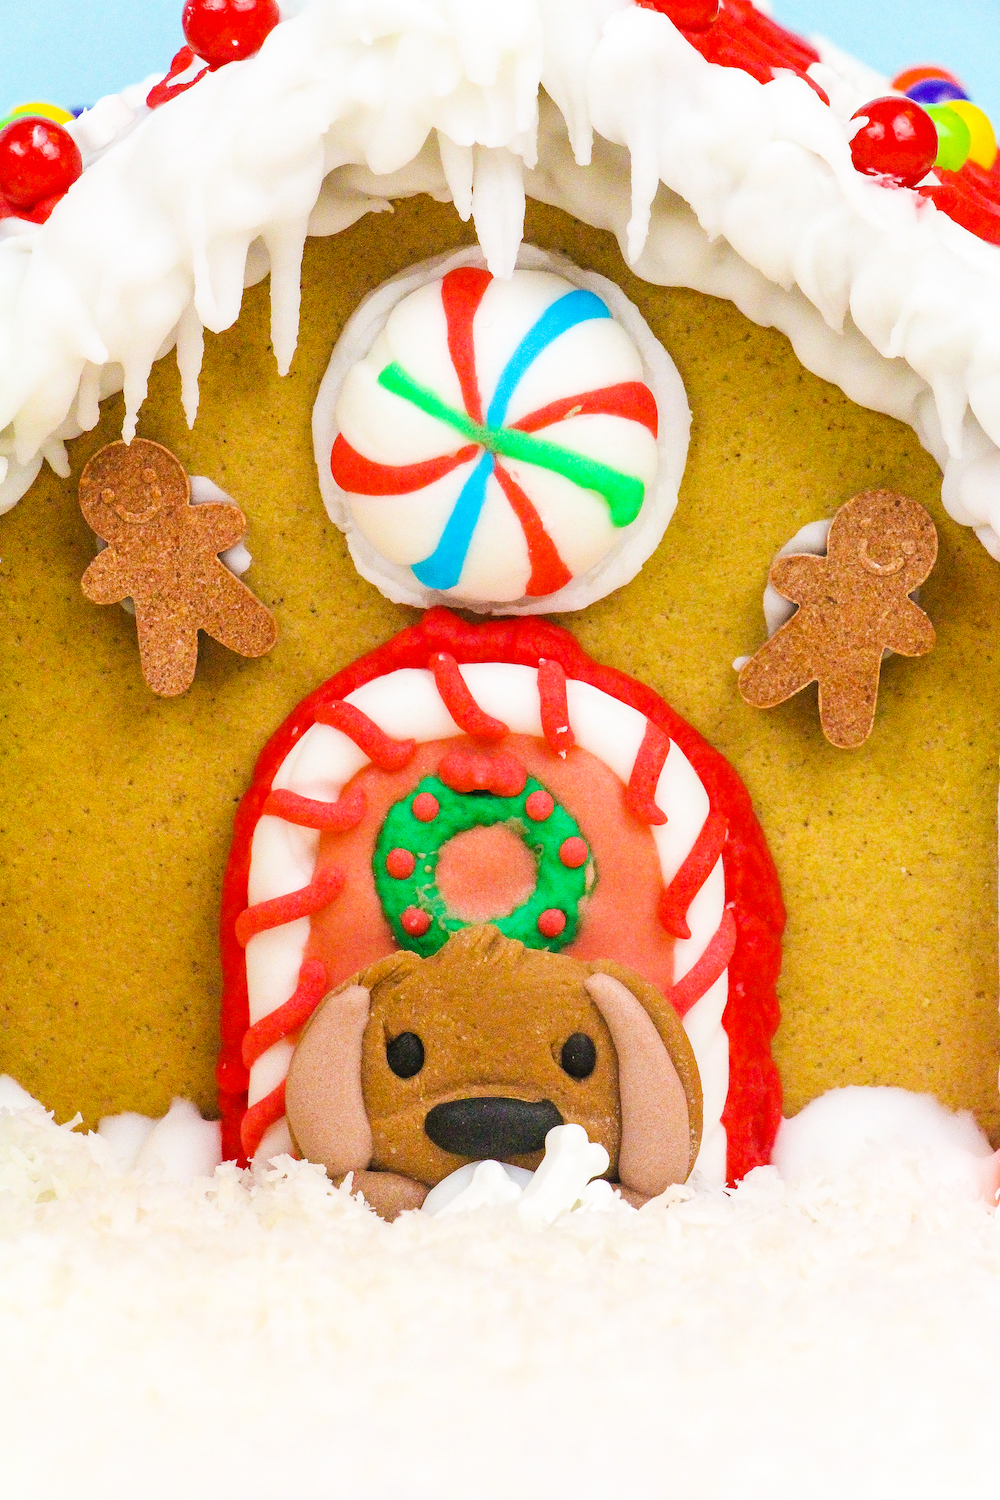 Dog House Gingerbread House Kit